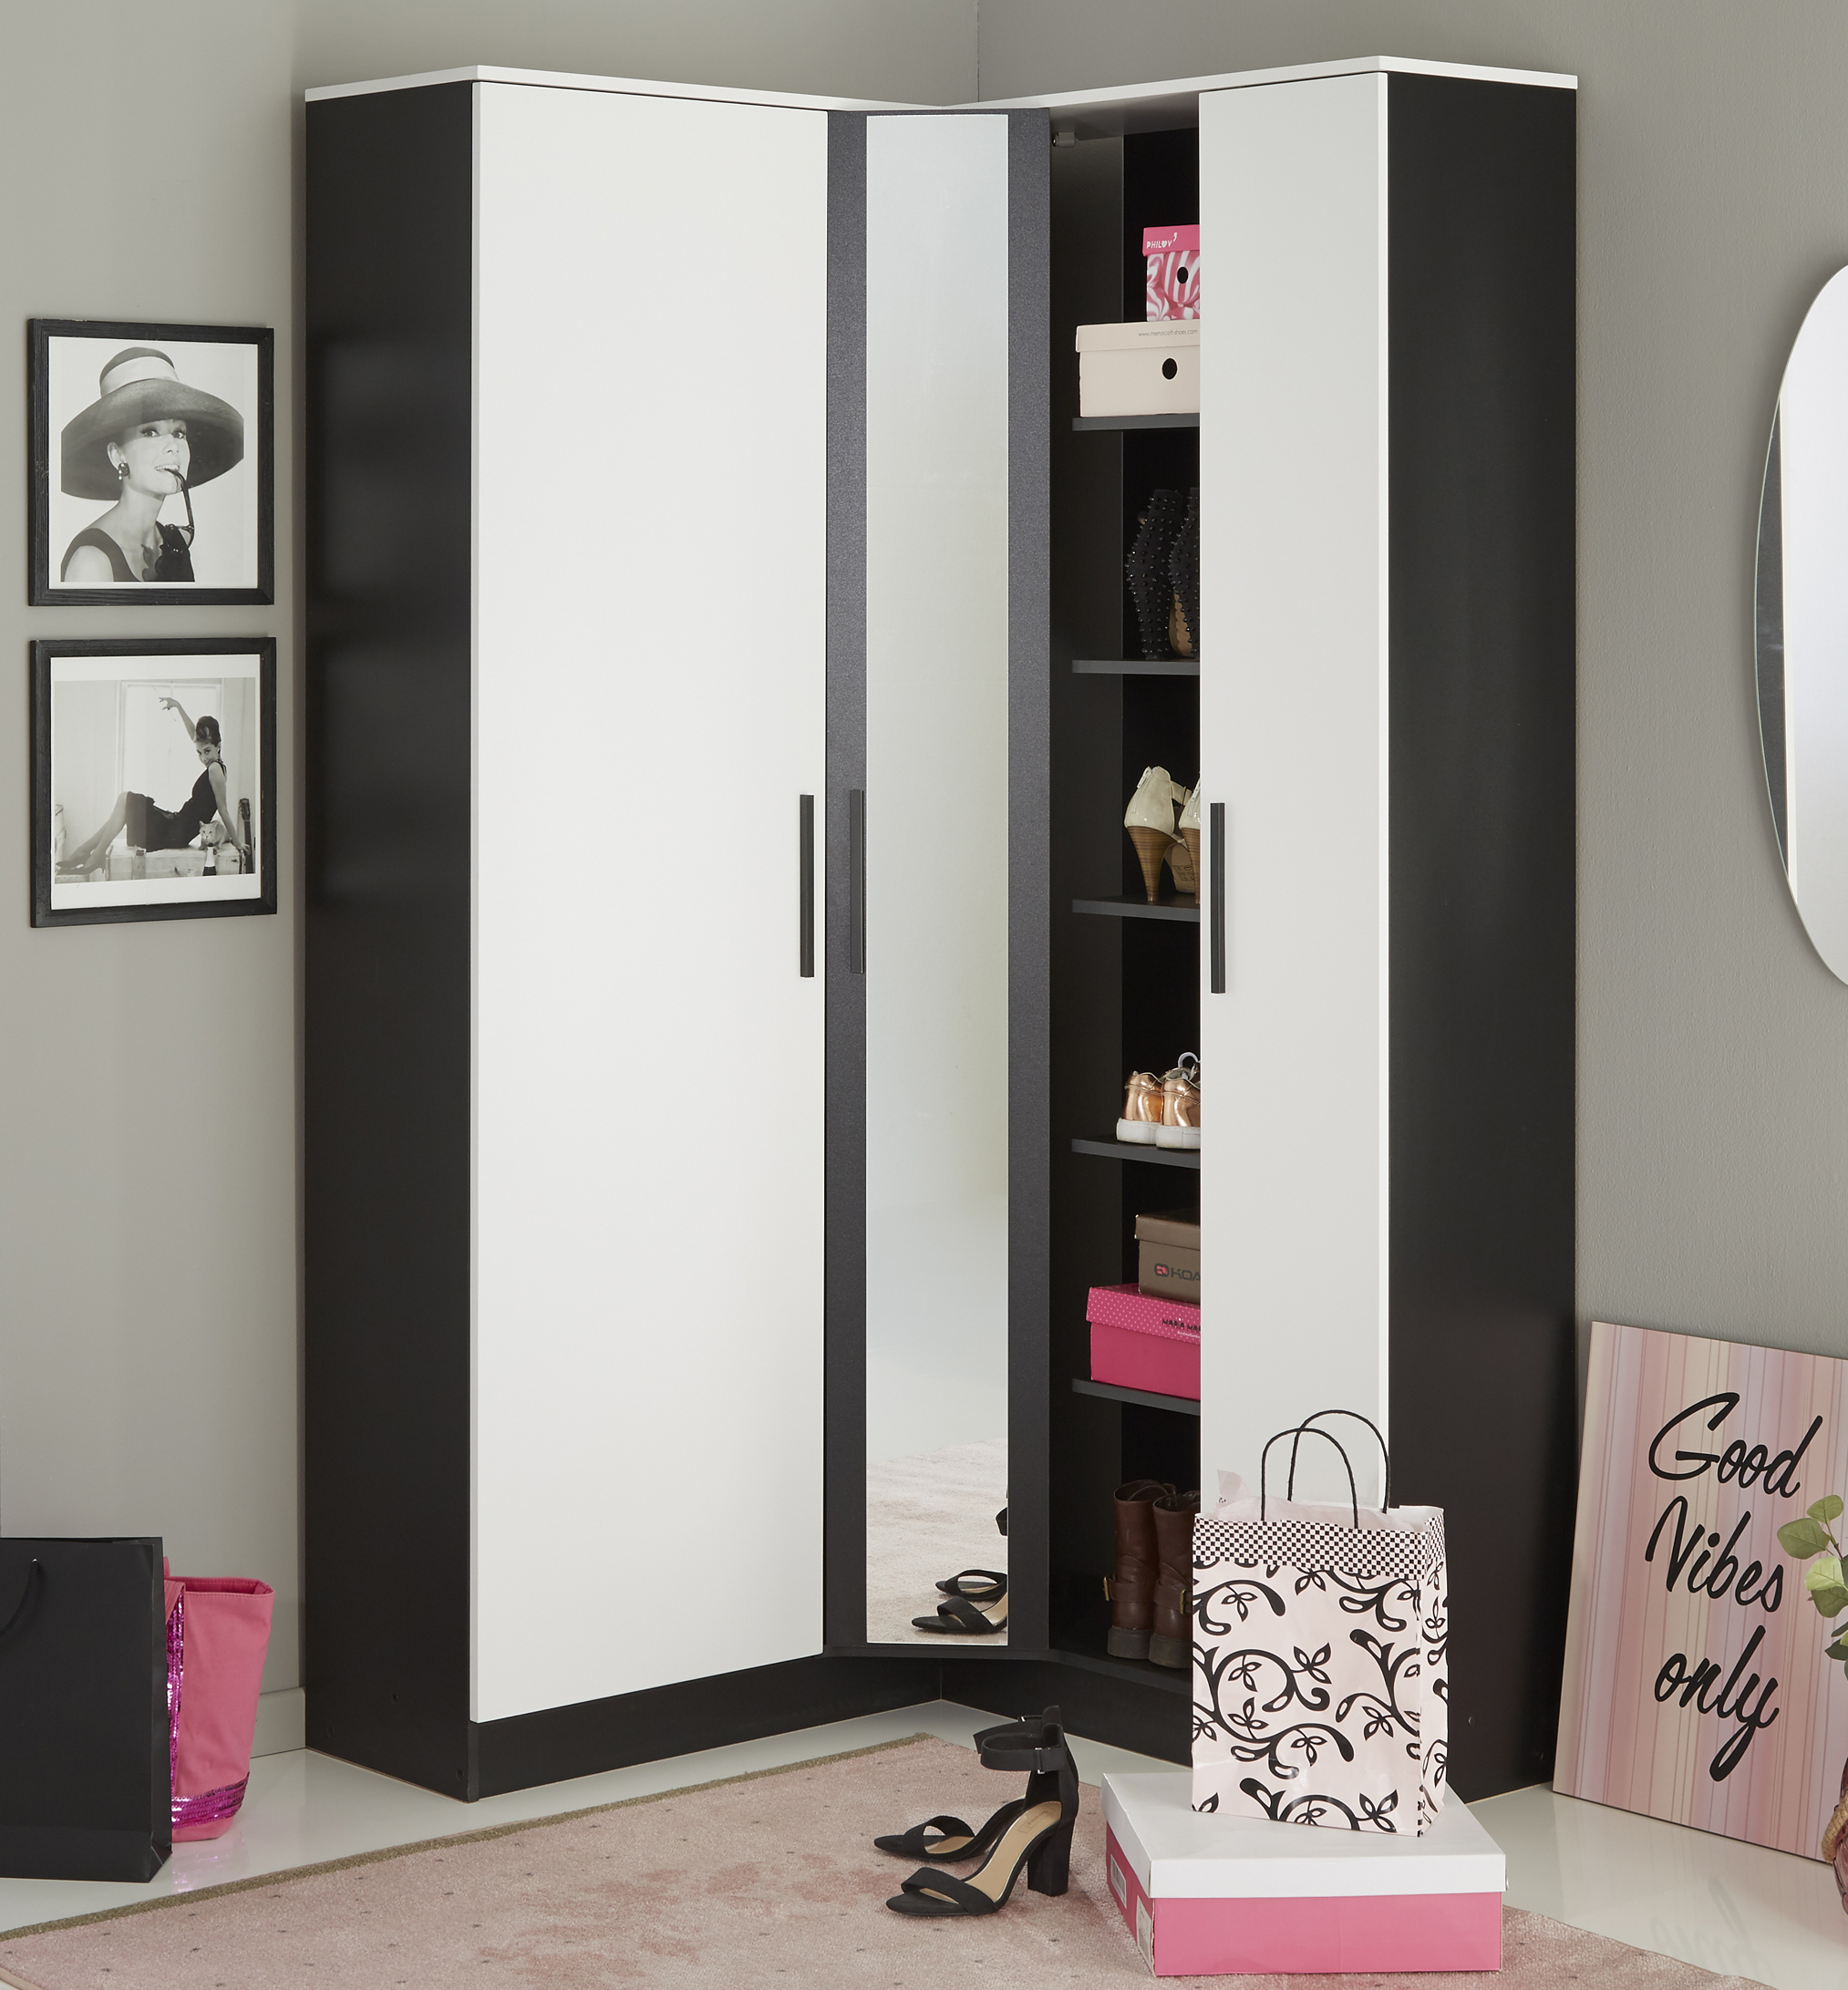 eck schuhschrank inkl spiegel u drehbarem regal escarpin von parisot schwarz weiss. Black Bedroom Furniture Sets. Home Design Ideas